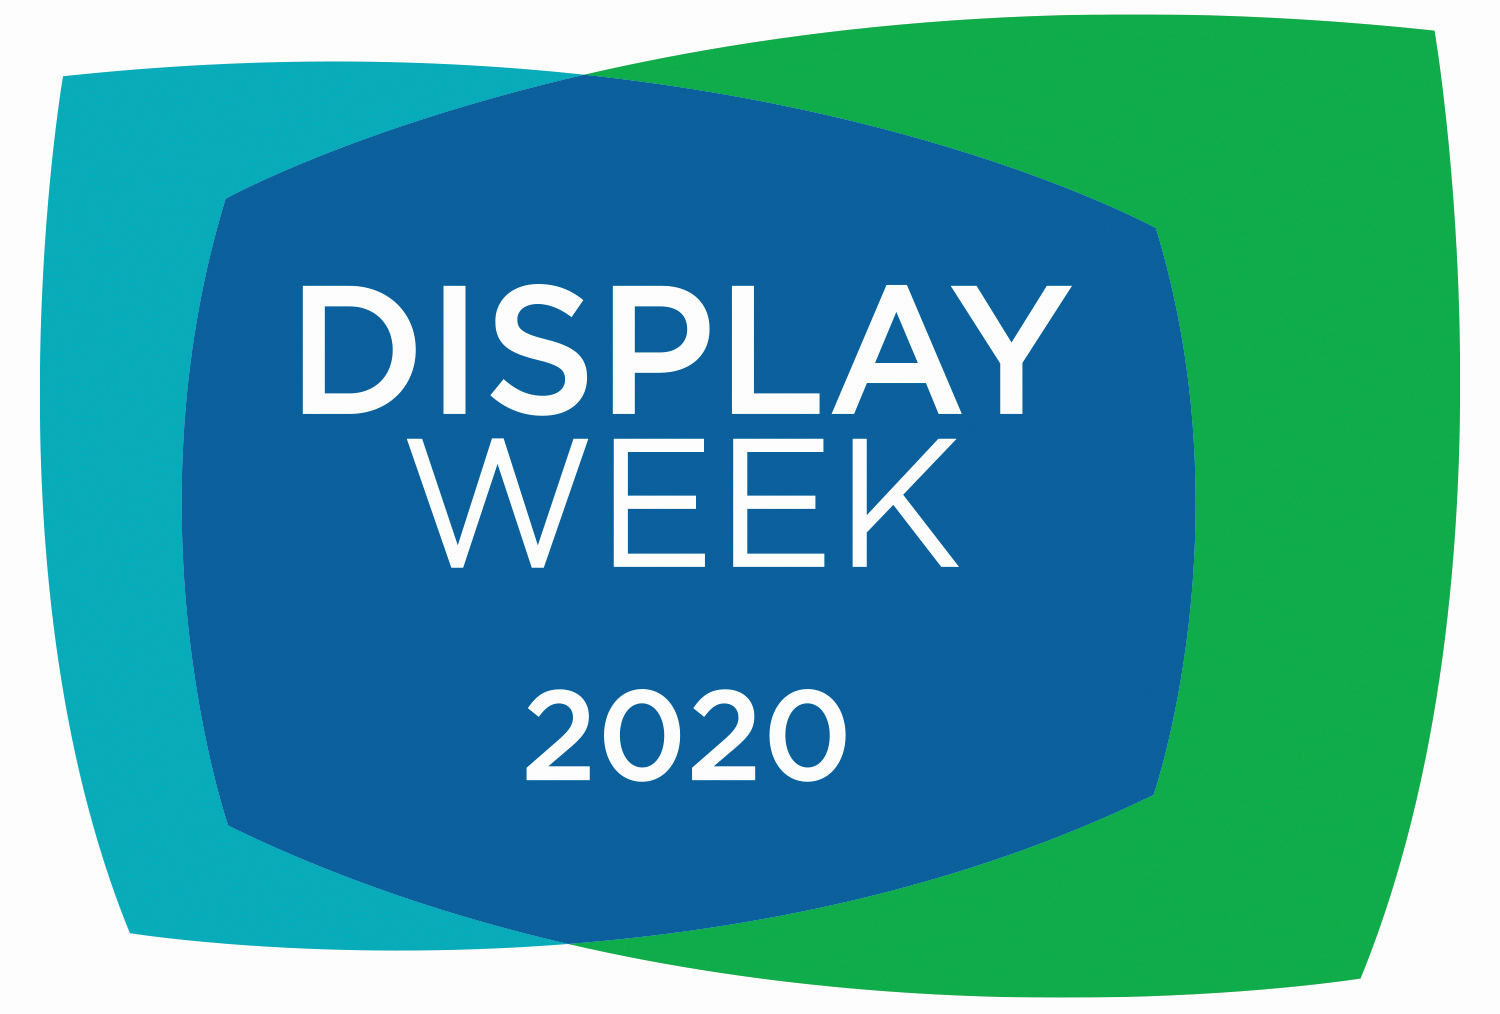 See us at Display Week from the 3rd to the 7th August article image